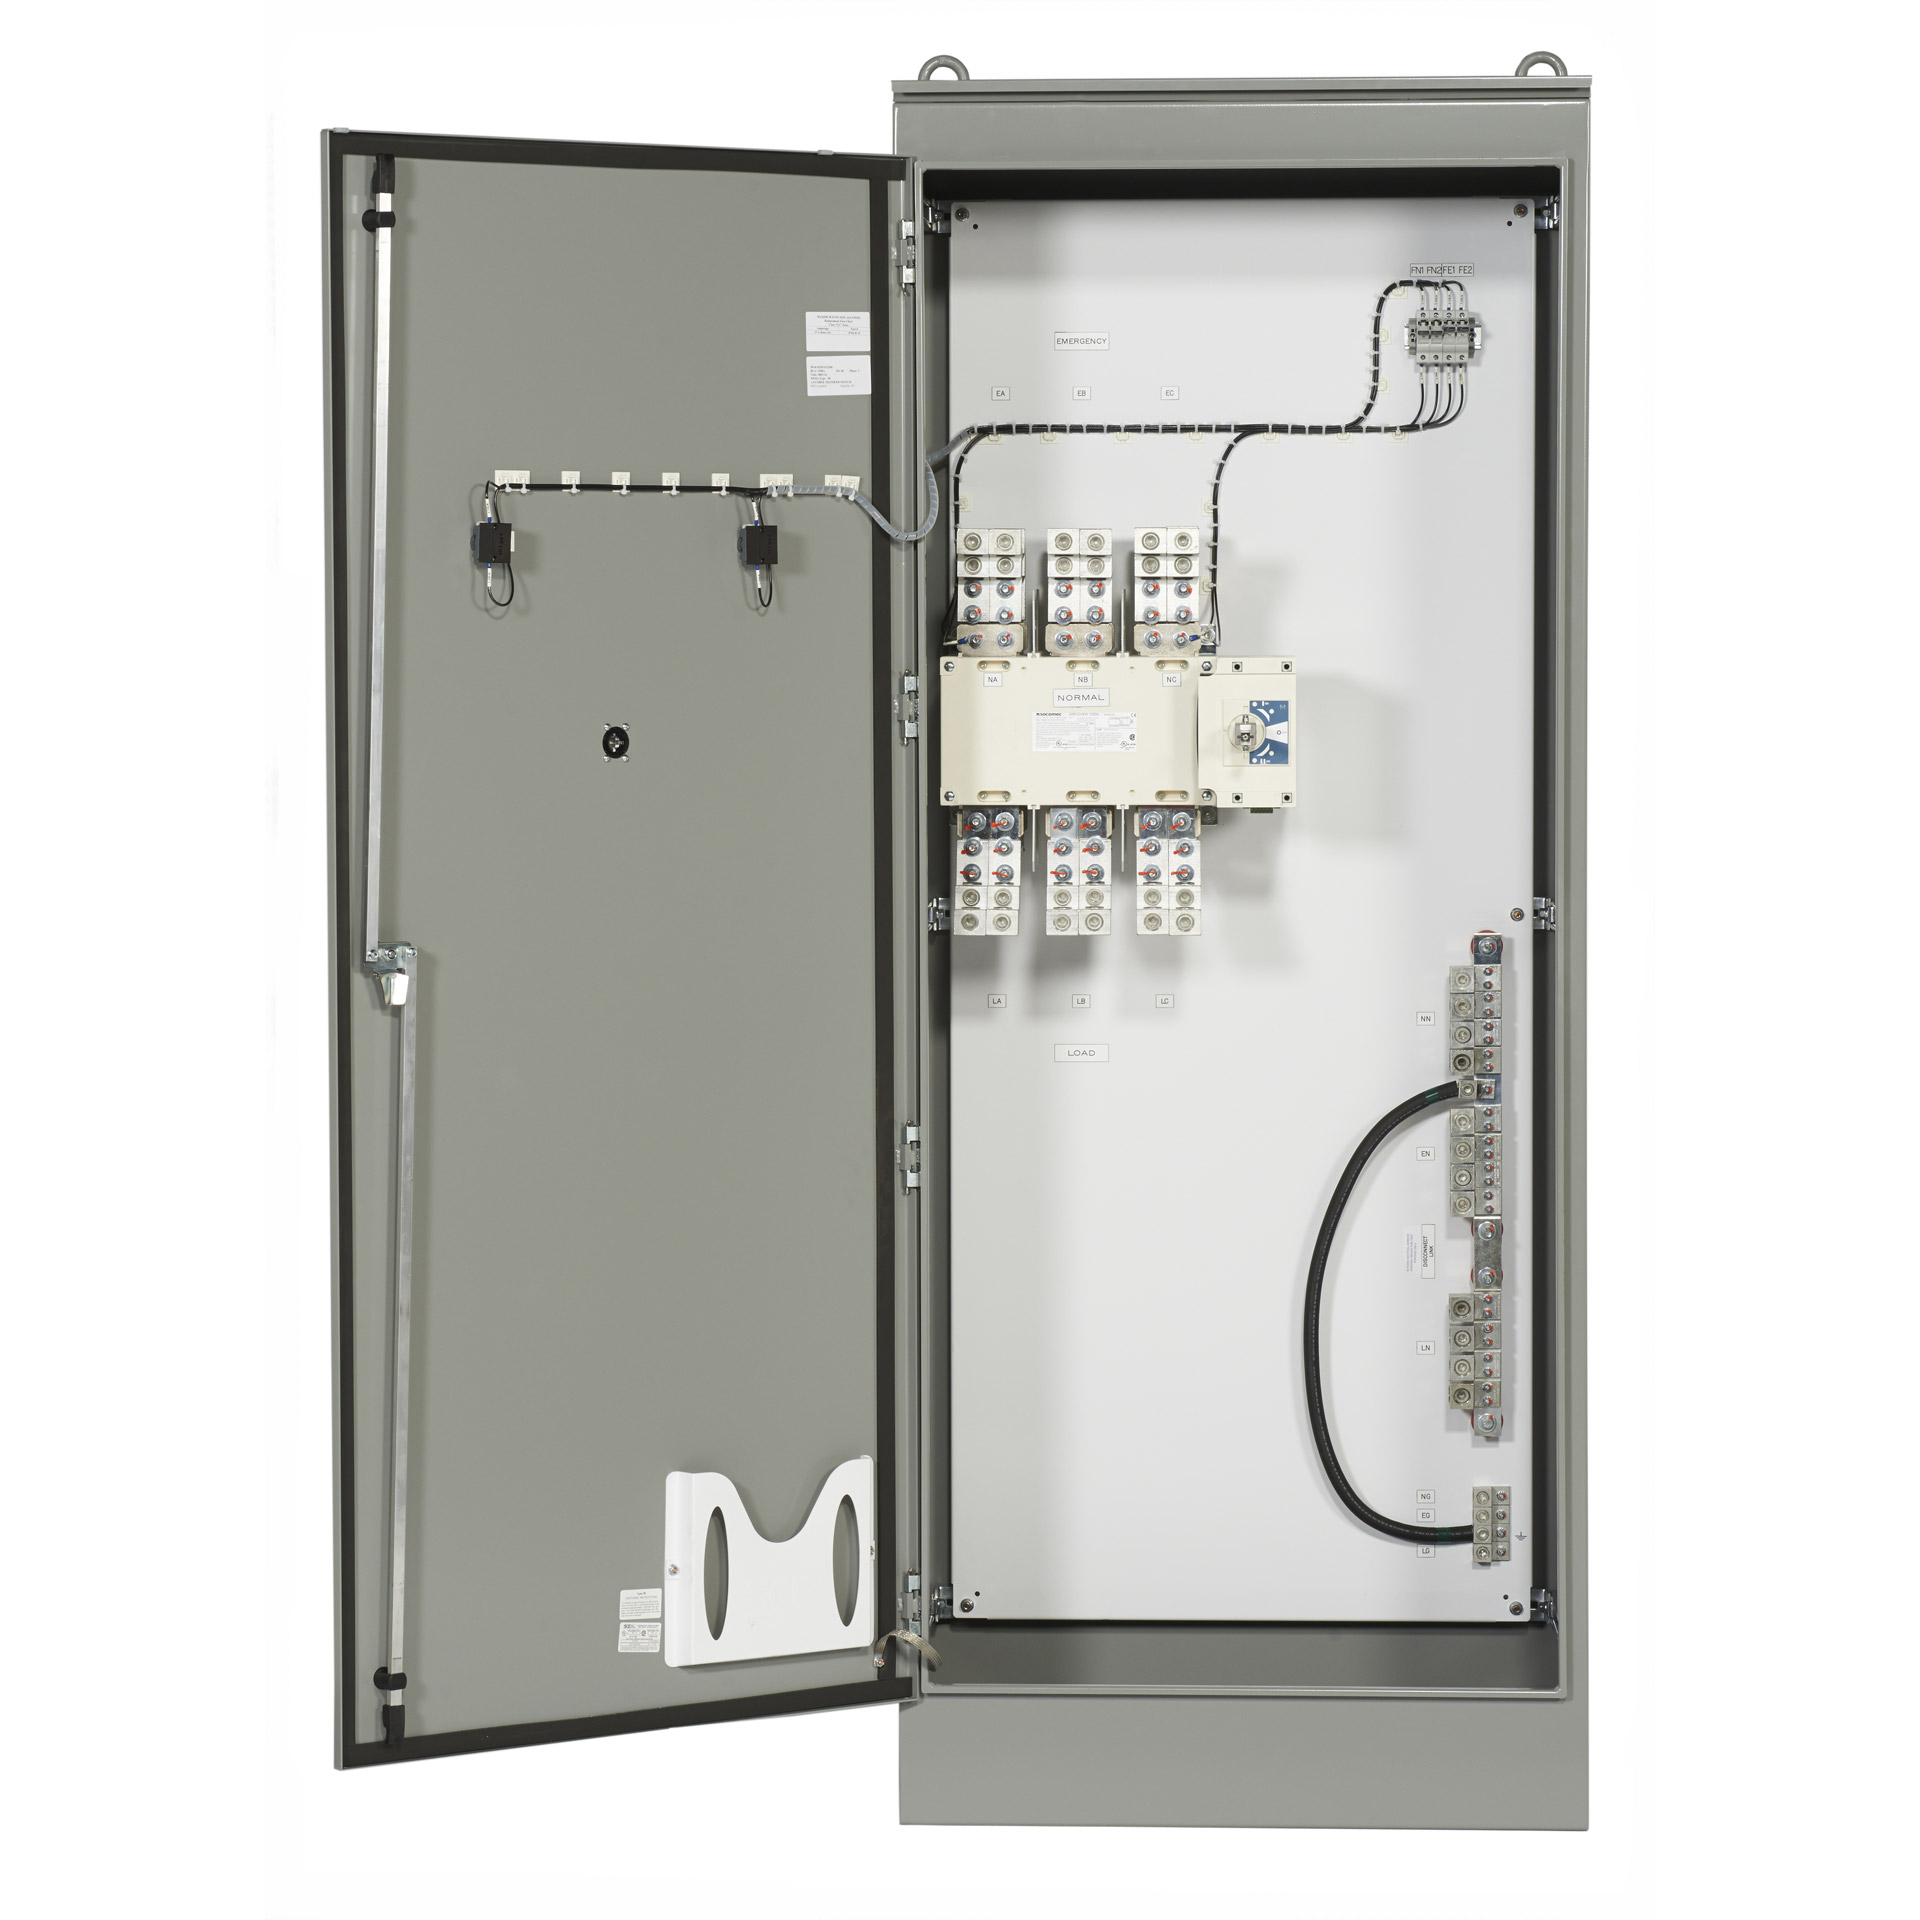 Fuse Box Panel Outline Wiring Diagram Schematics 99 F650 Psi Manual Transfer Switch With Rotary 200 3000 Amps Door